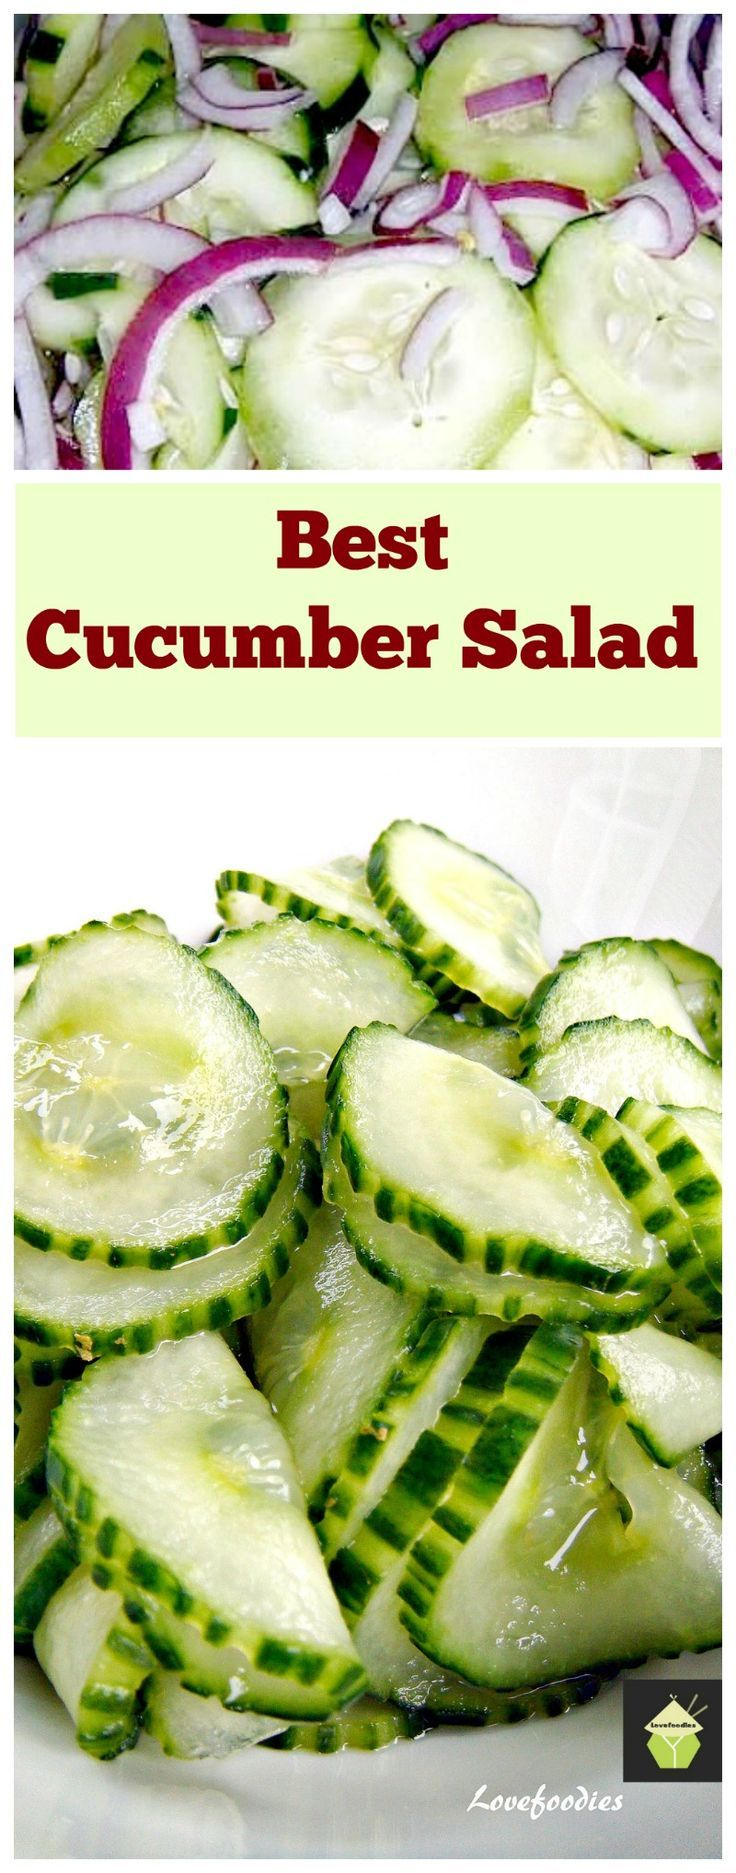 Best cucumber salad dressing recipes